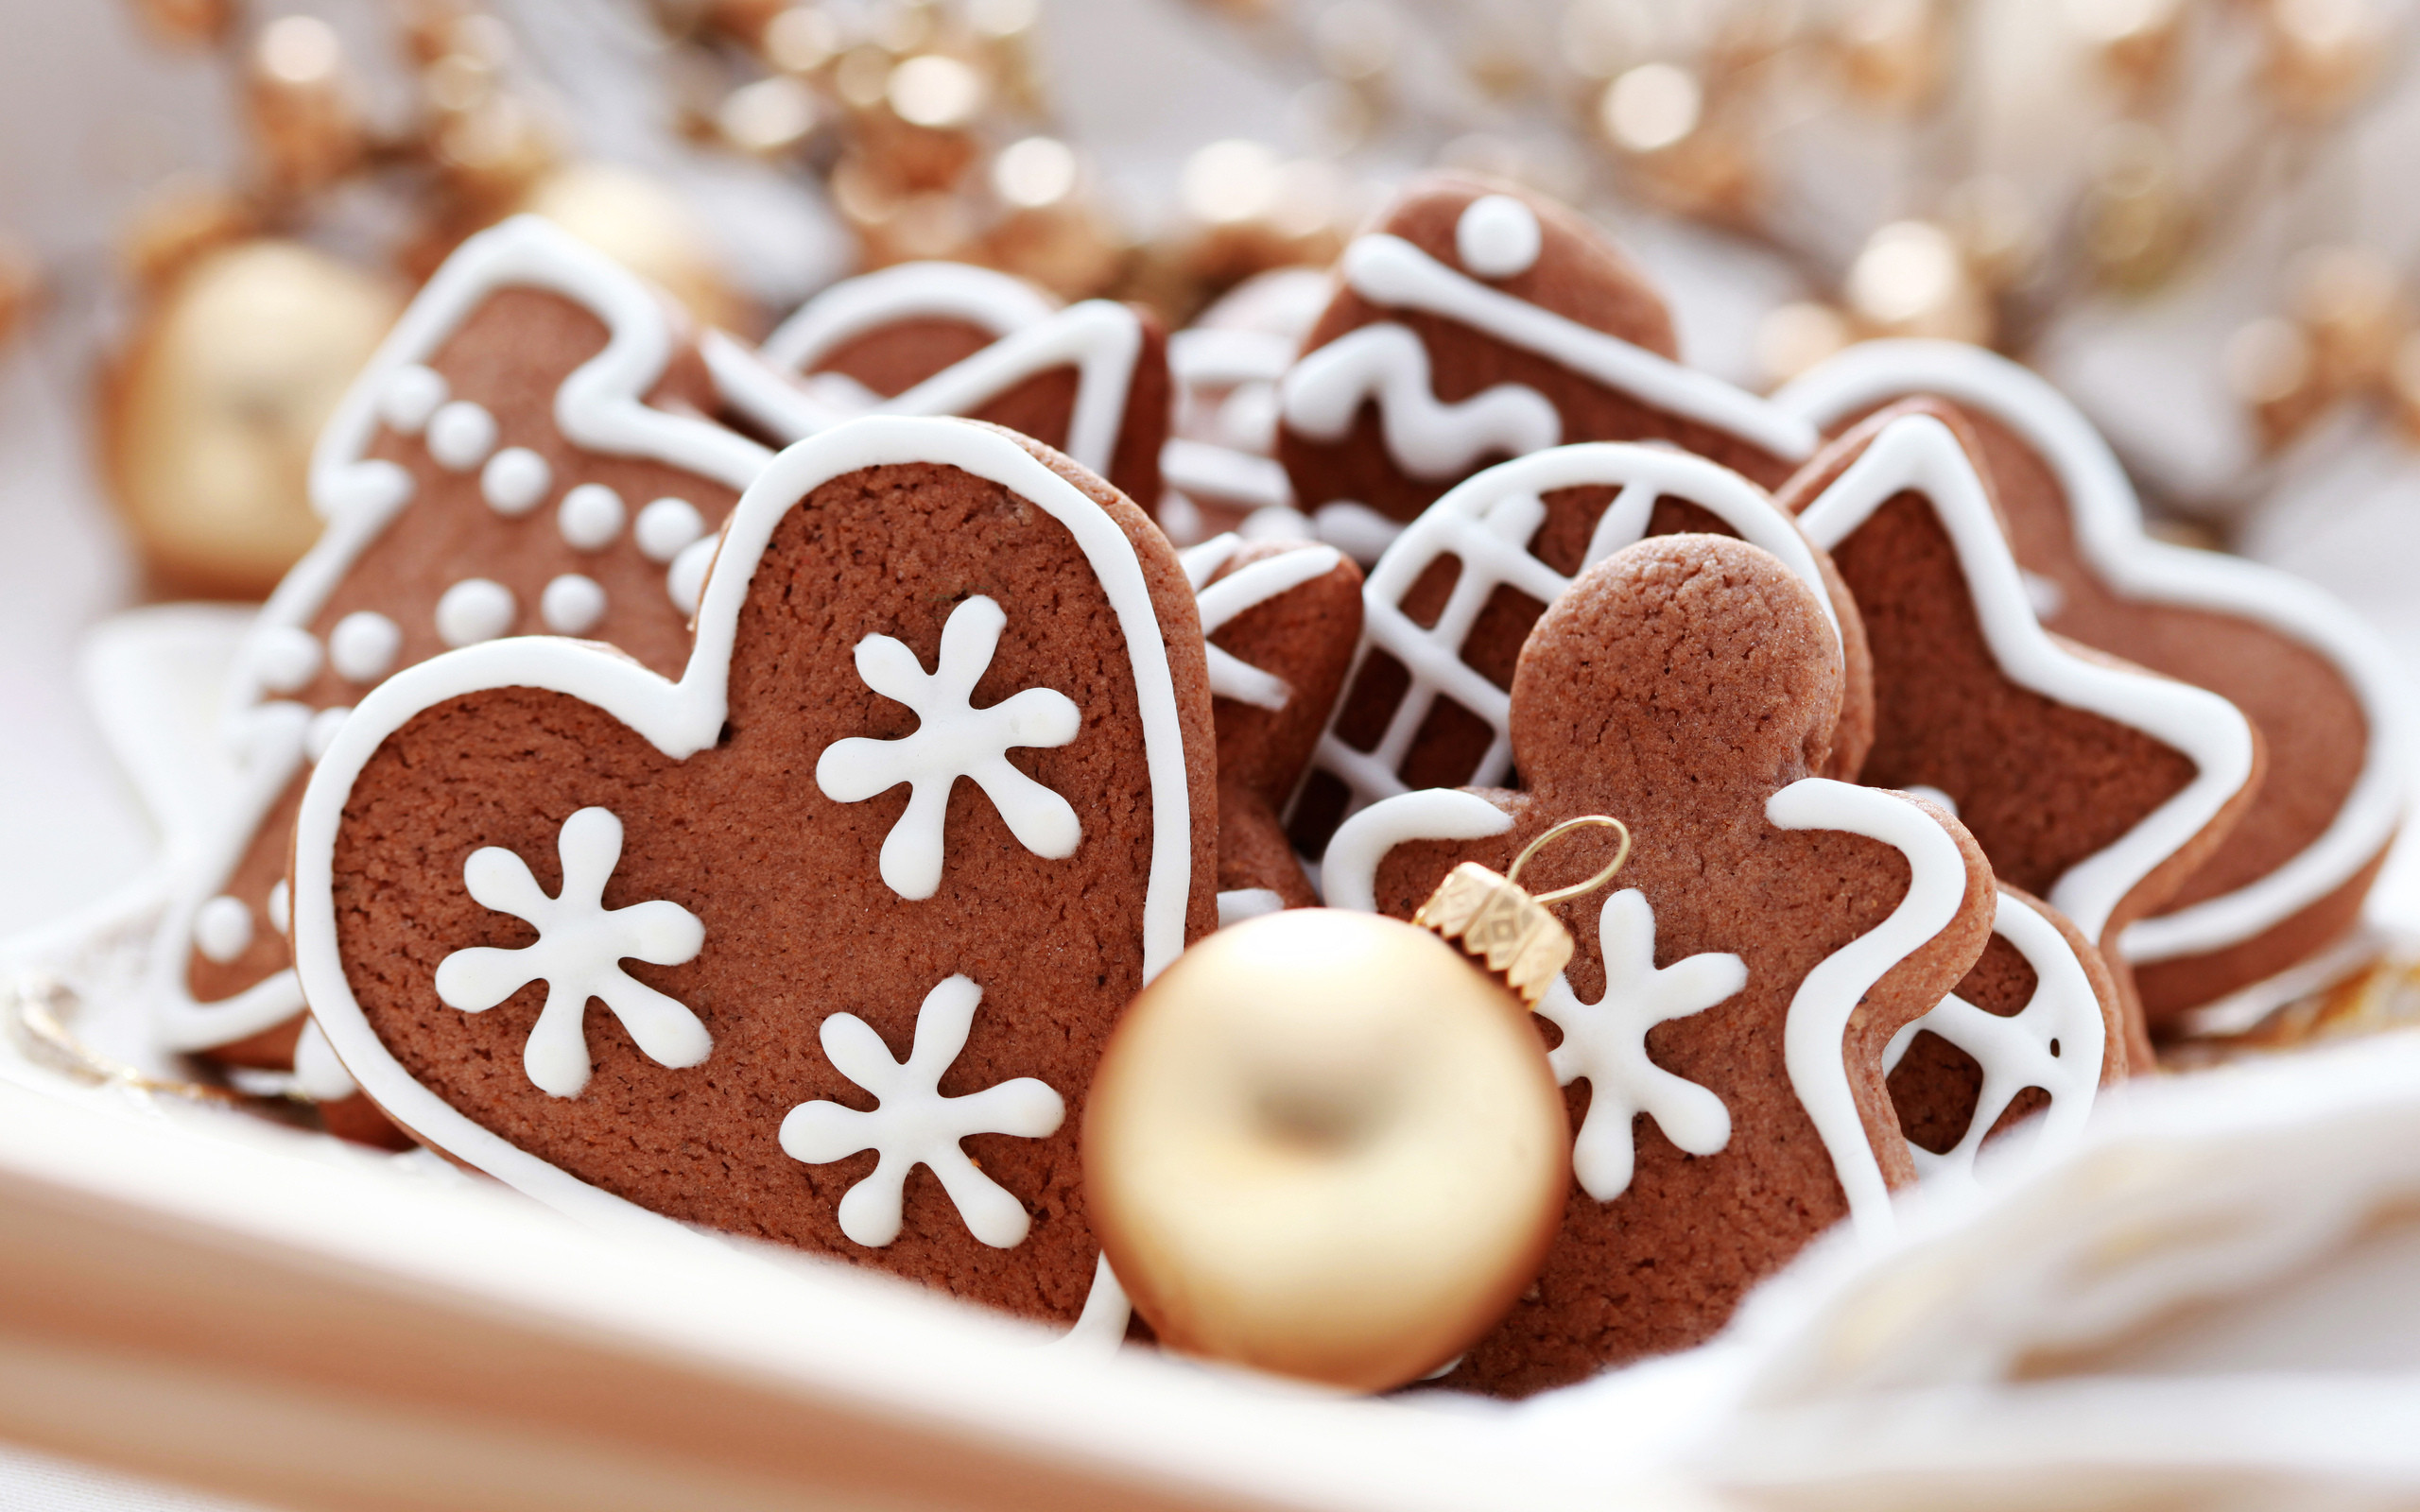 2560x1600 Heart Shaped Chocolate Christmas Cookies Desktop Wallpaper